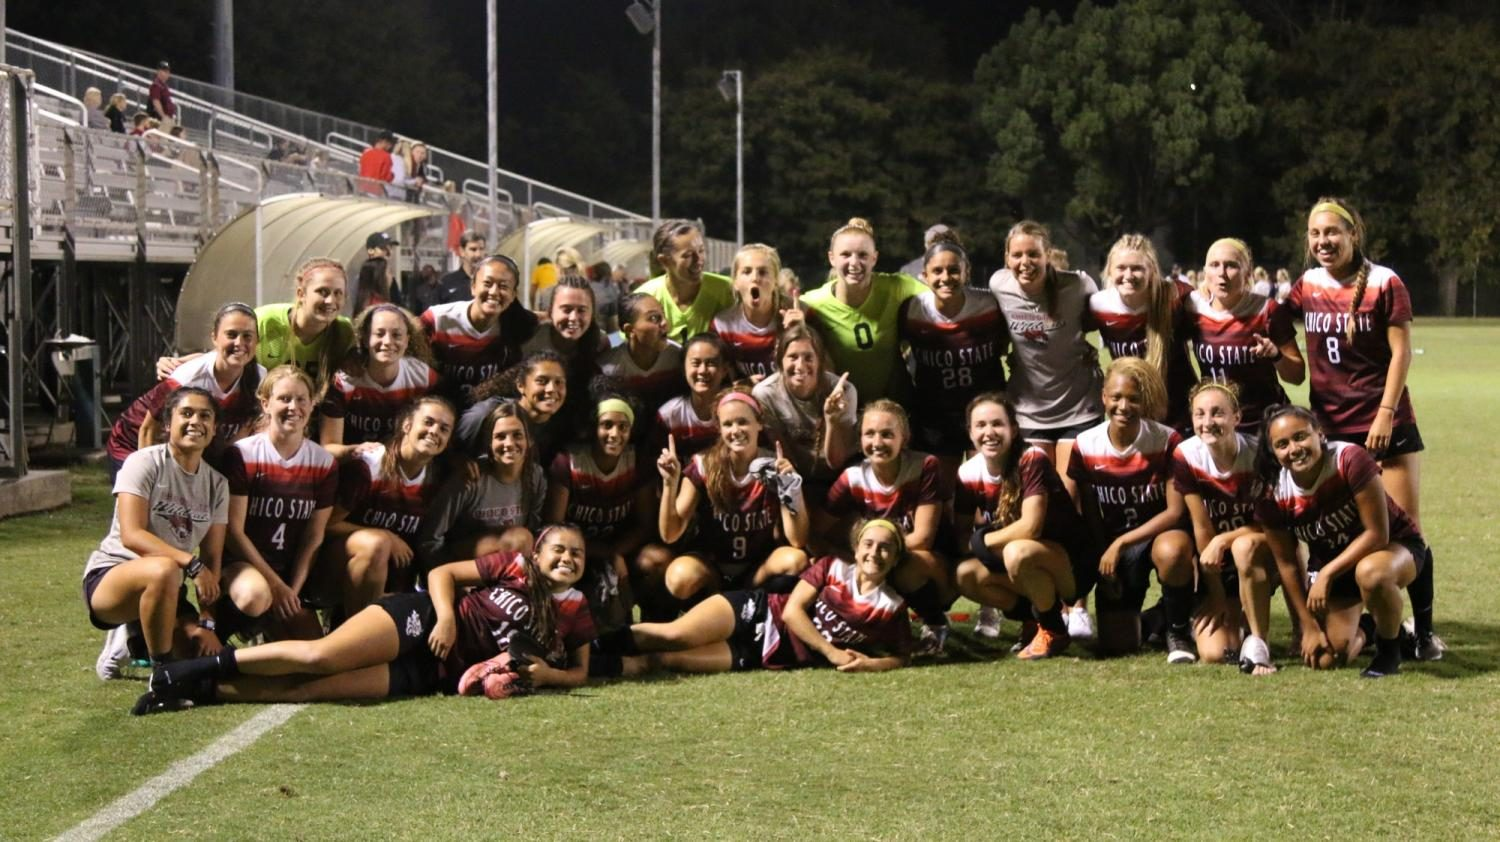 Chico+State+women%27s+soccer+poses+for+a+picture+after+a+good+win.+Photo+credit%3A+Lamar+Lomack